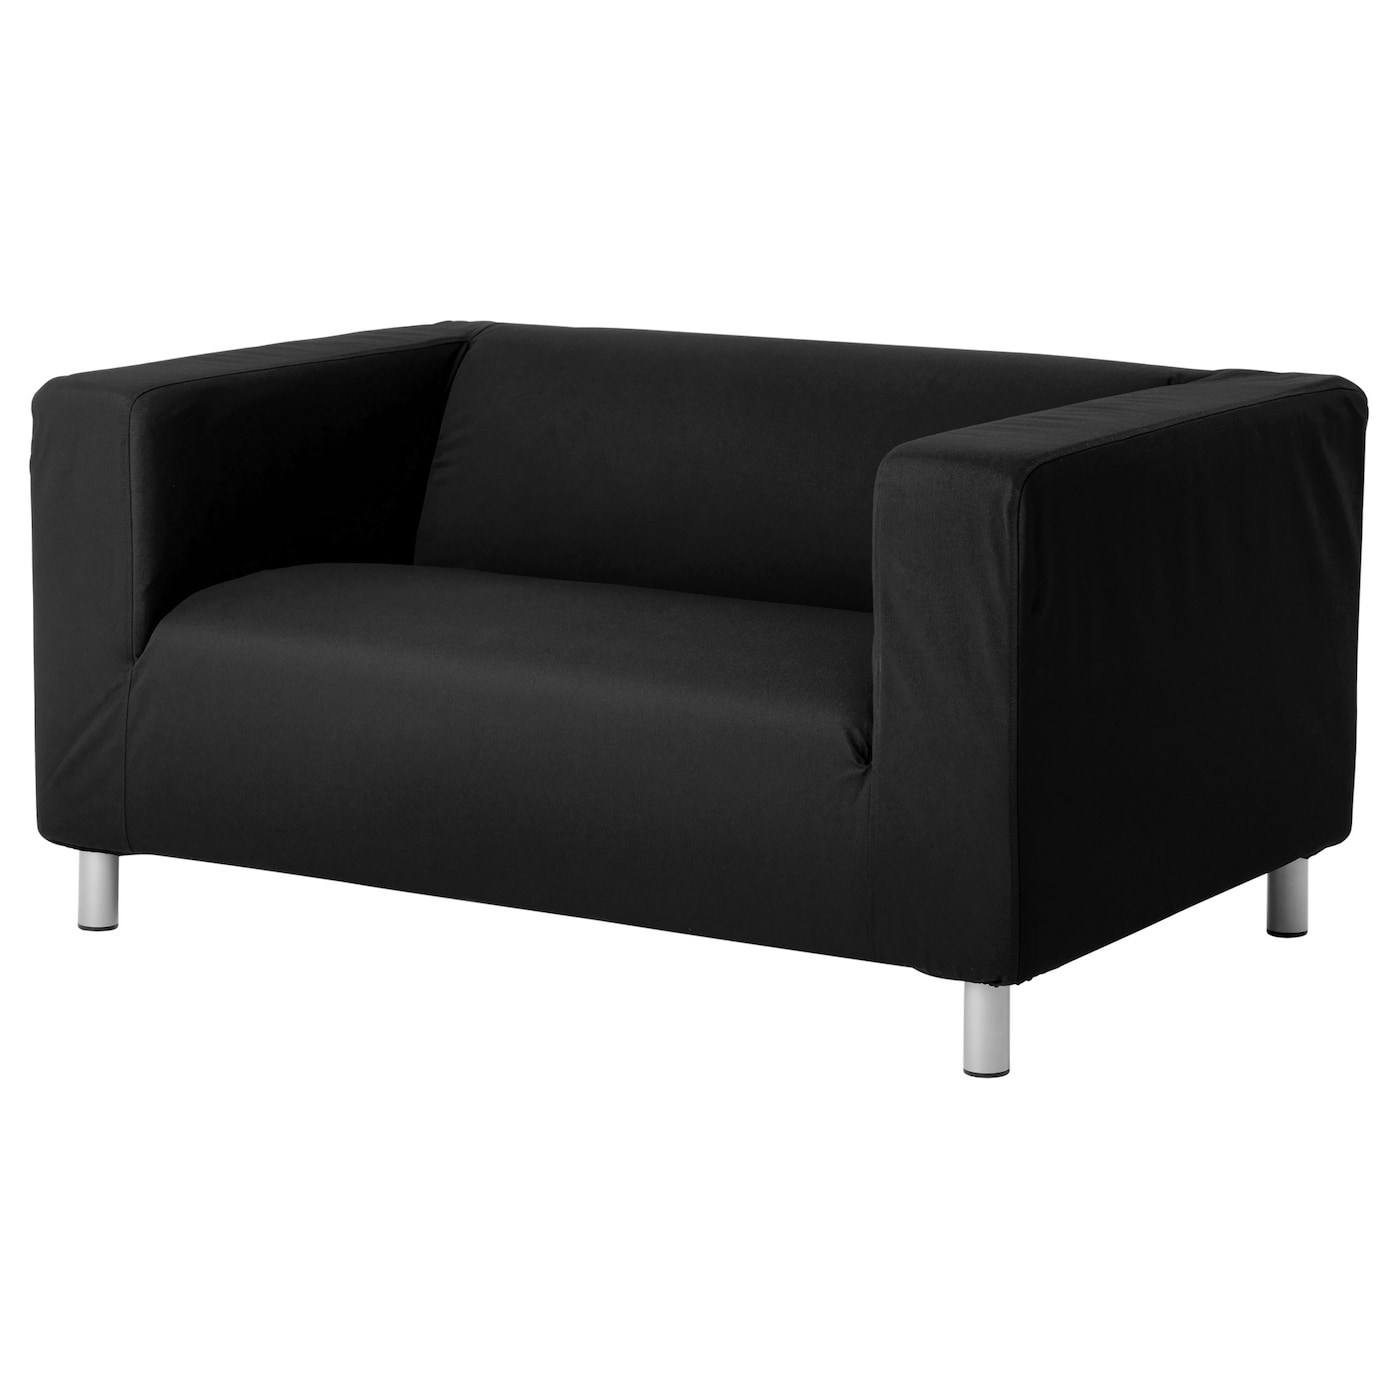 klippan two seat sofa gran n black ikea. Black Bedroom Furniture Sets. Home Design Ideas